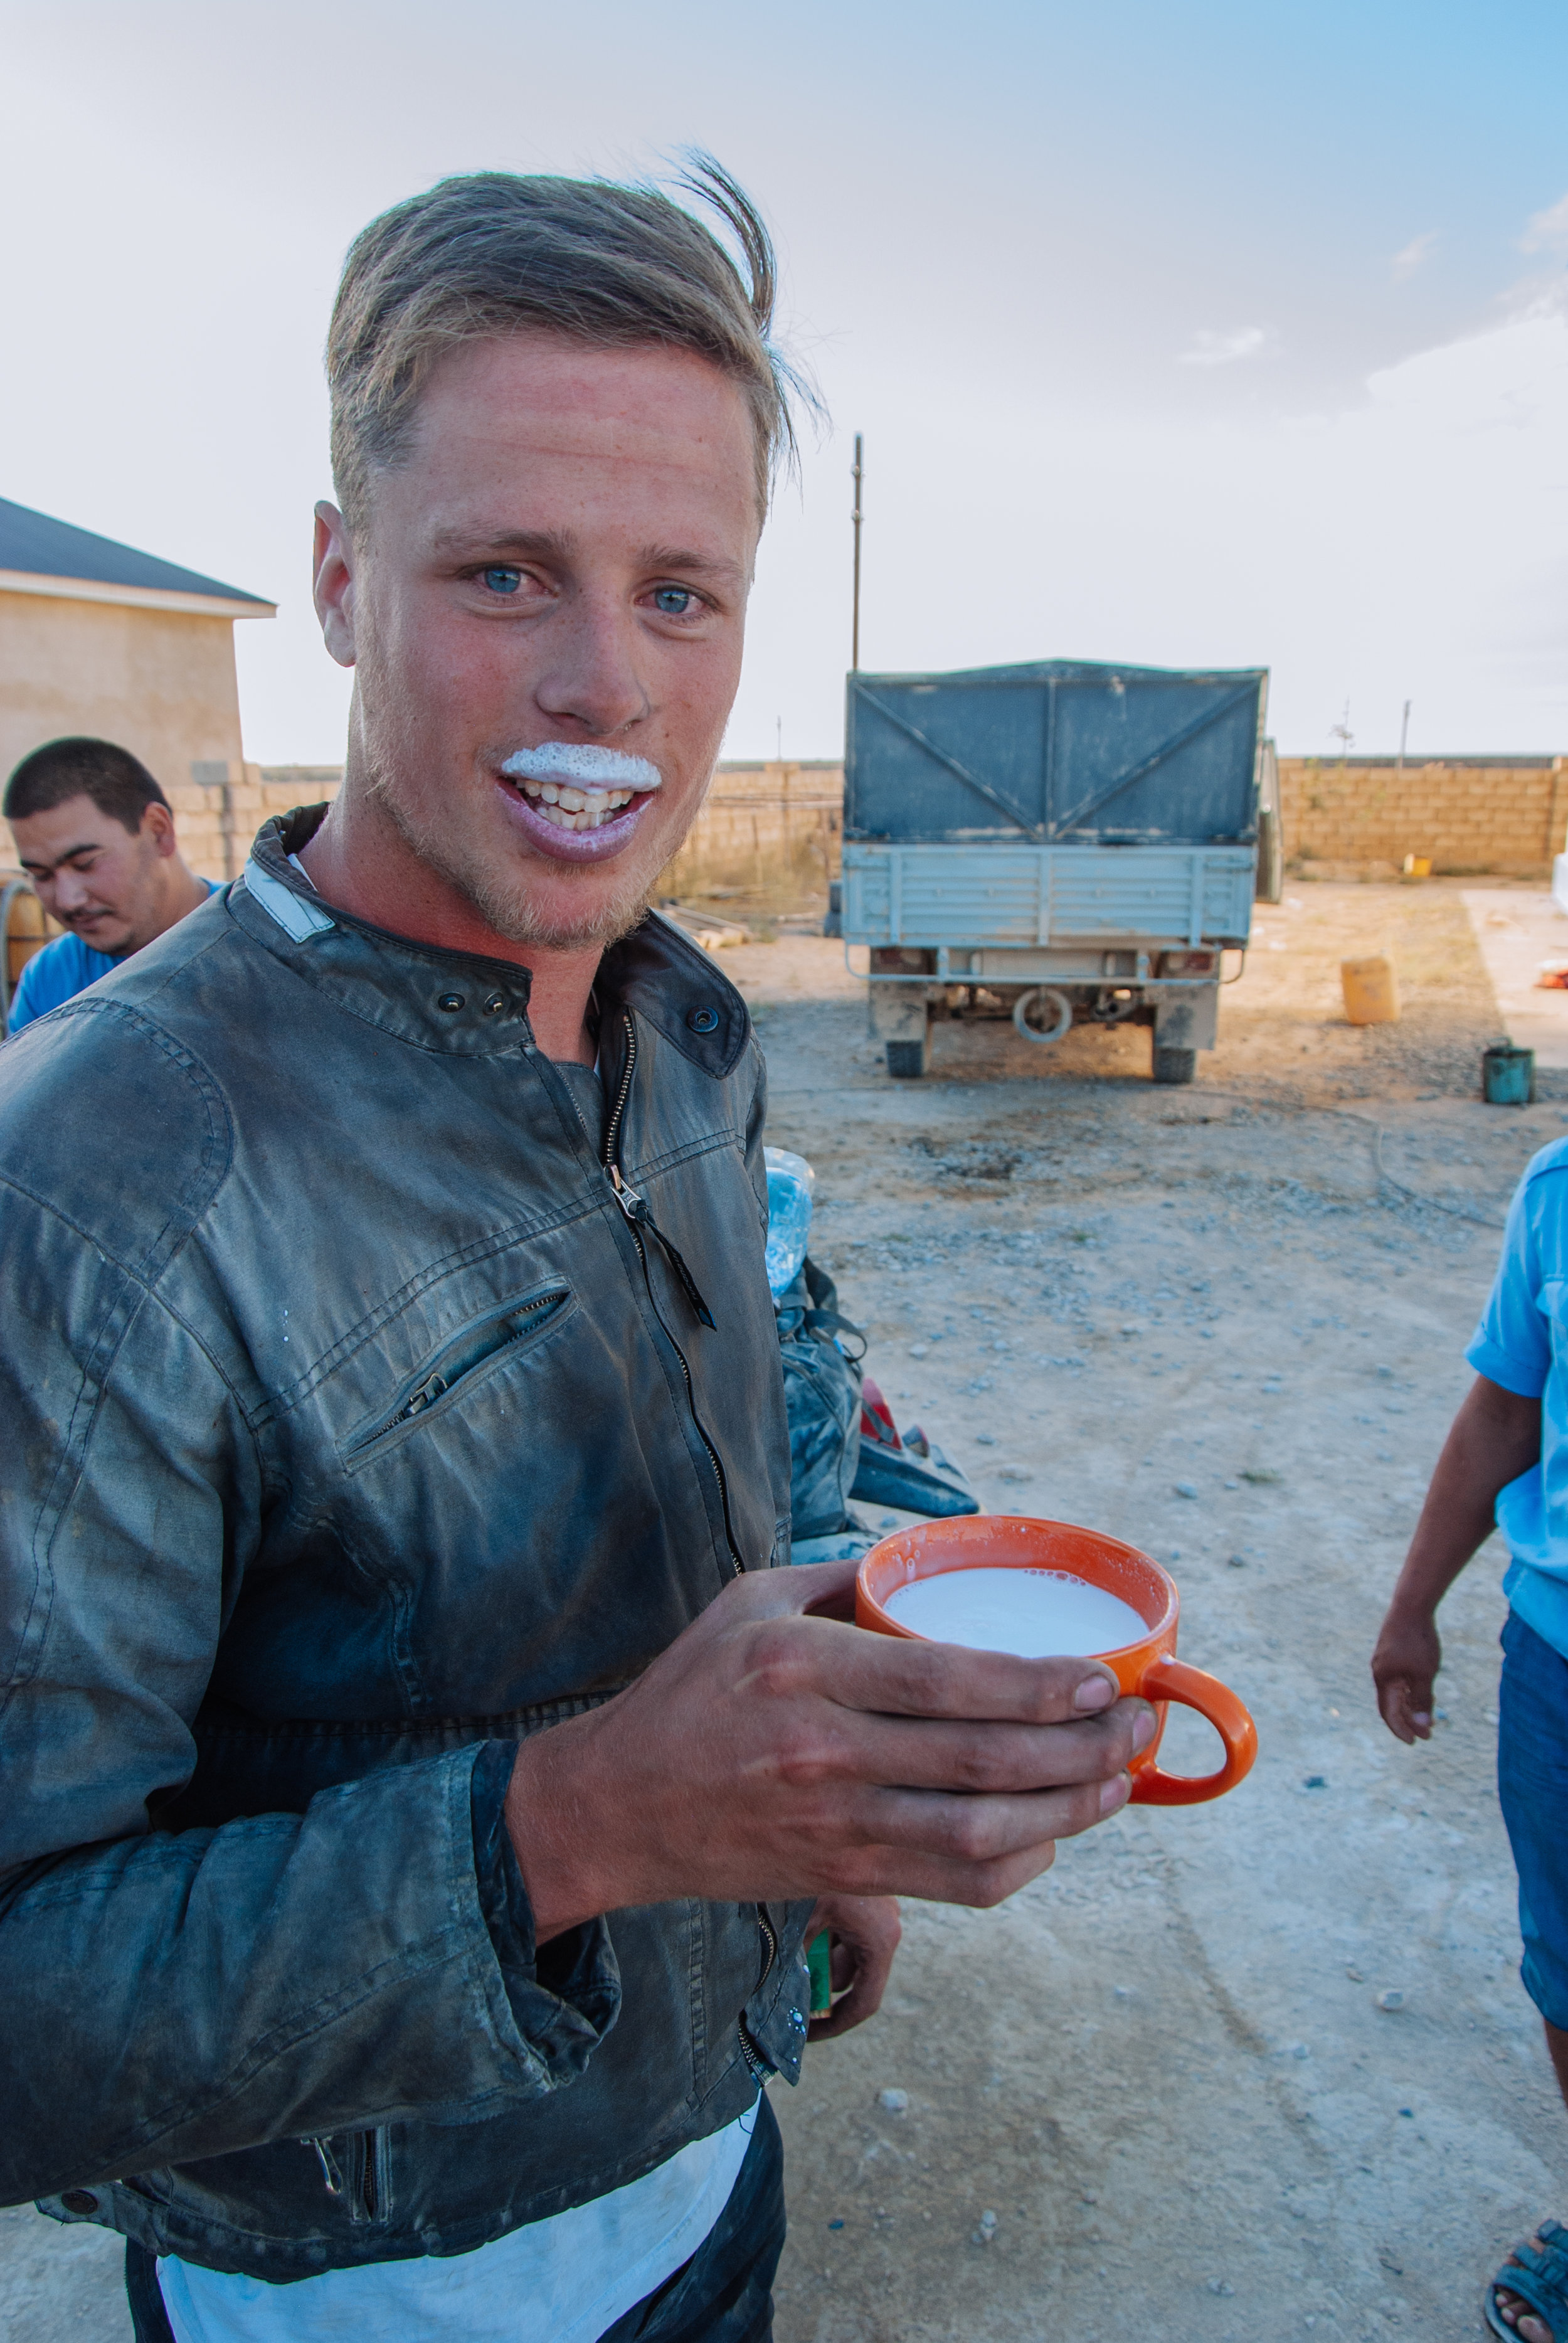 Dave tucking into some camel milk